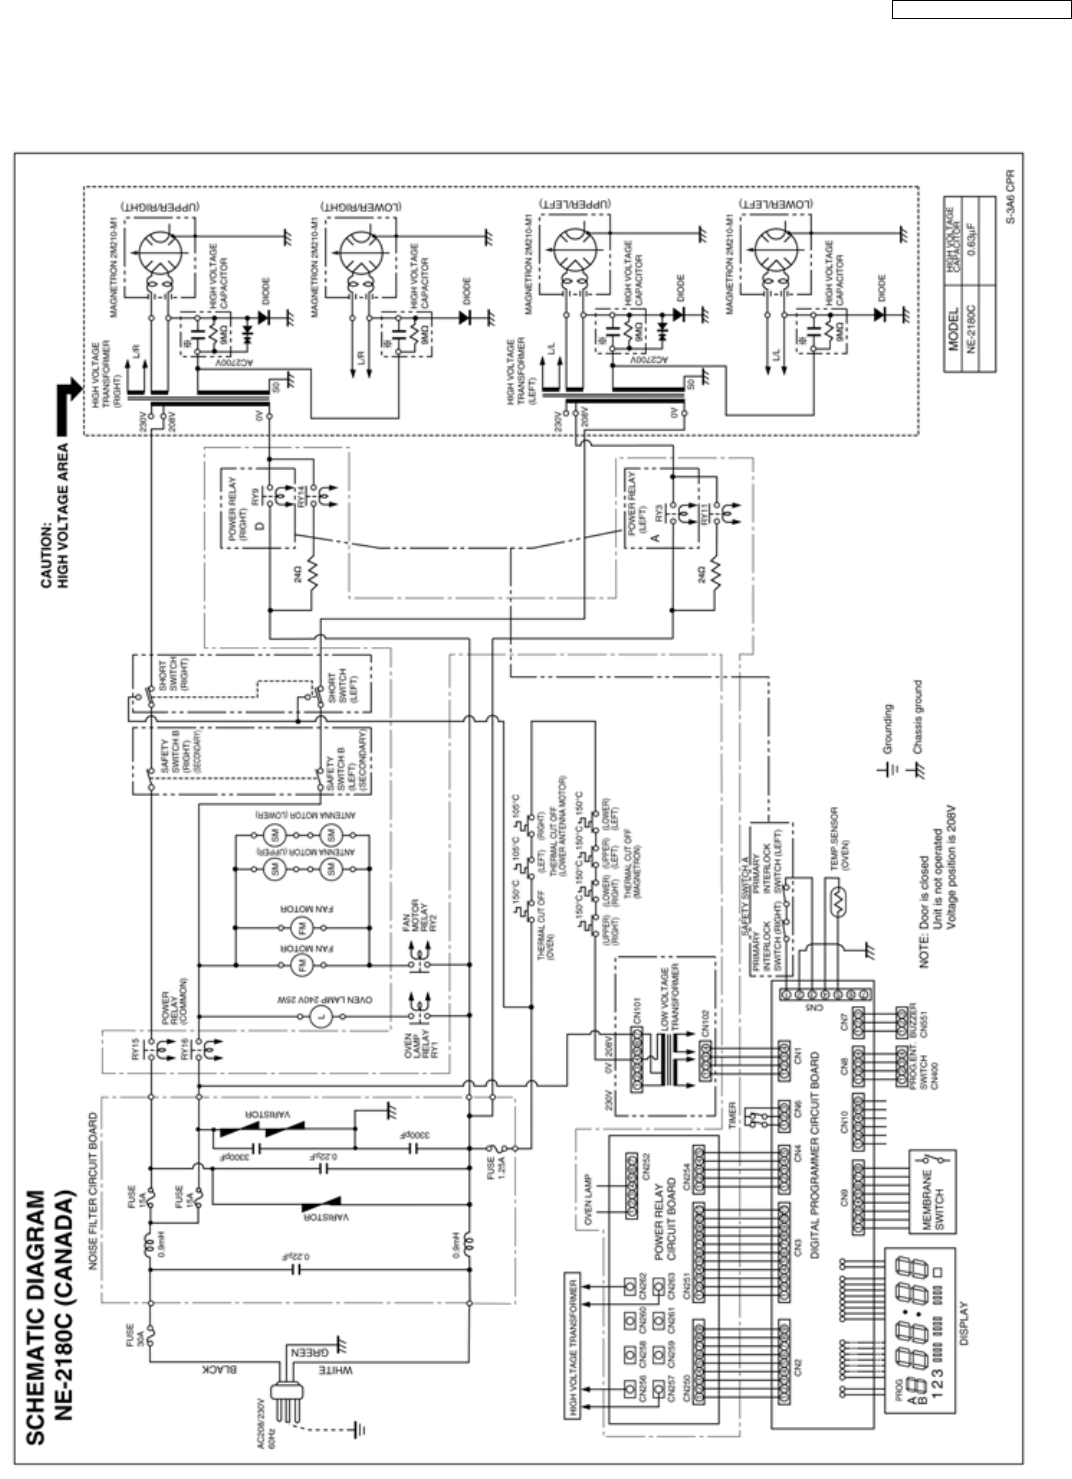 am broadcast band transmitter schematic pictures to pin on